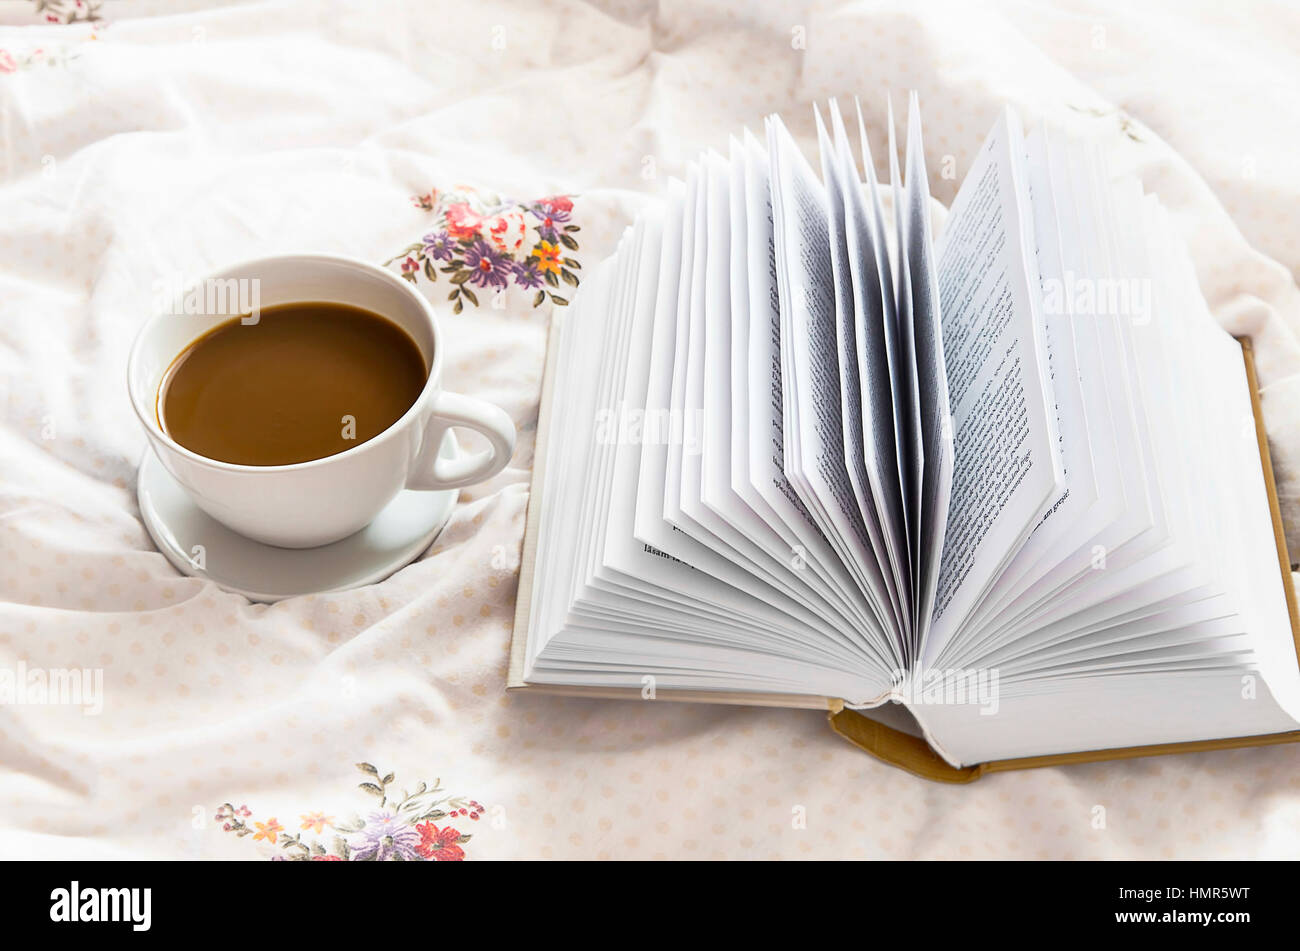 Still-life coffee cup and a book in bed on floral bed sheets - Stock Image